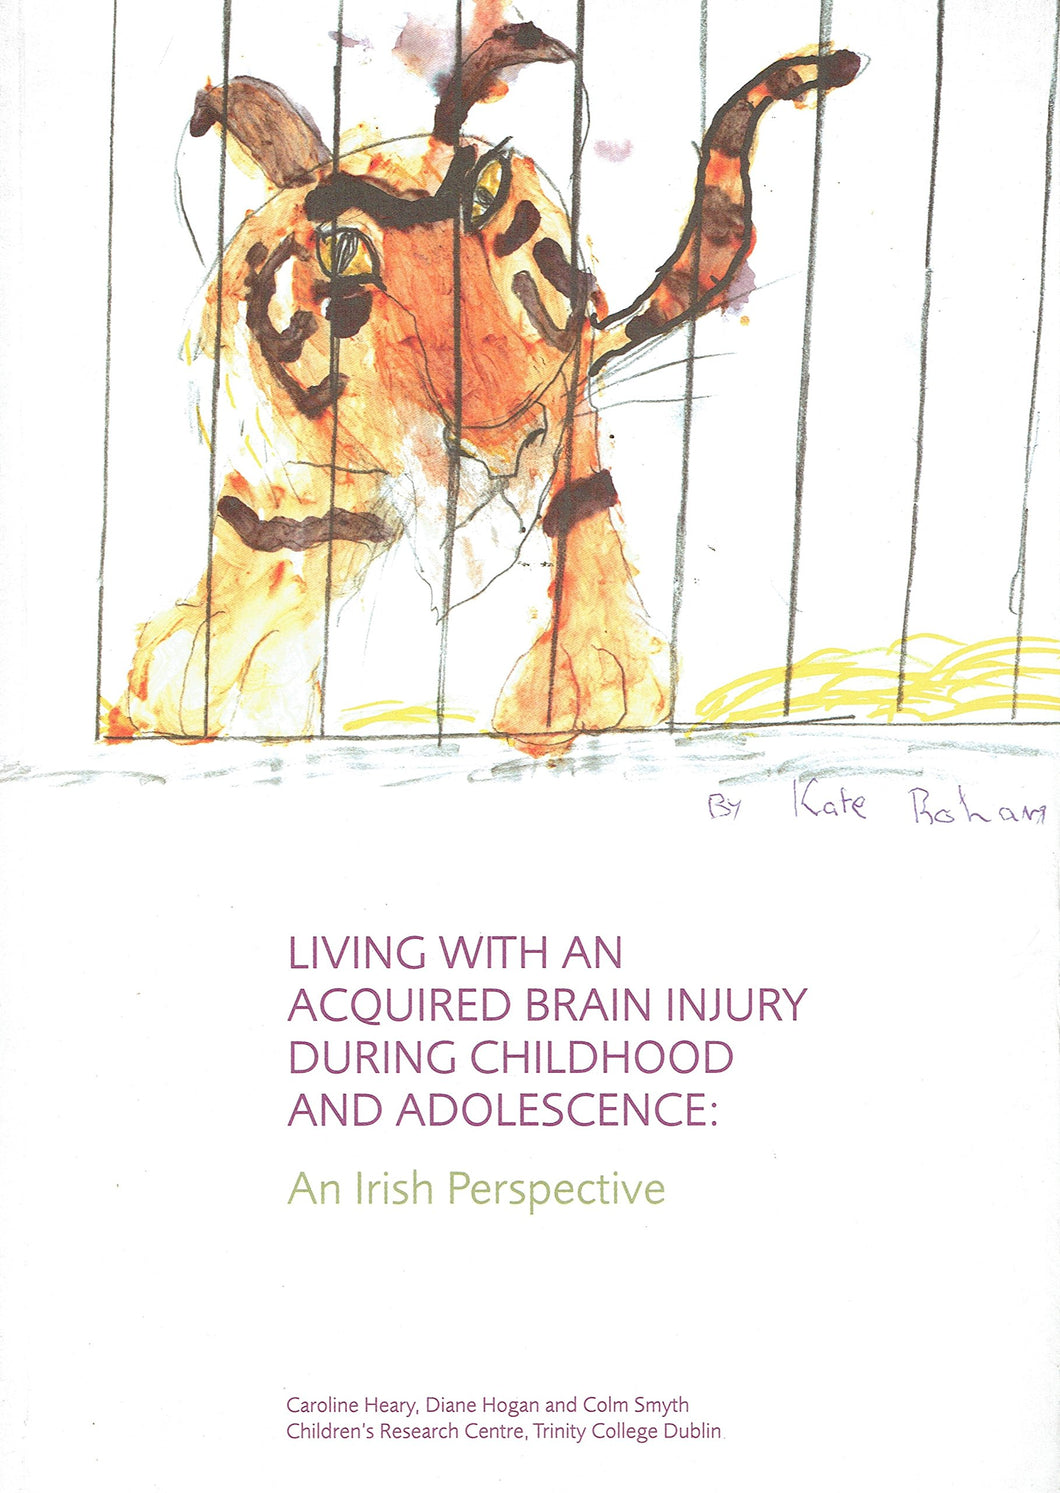 Living with an Acquired Brain Injury During Childhood and Adolescence: An Irish Perspective